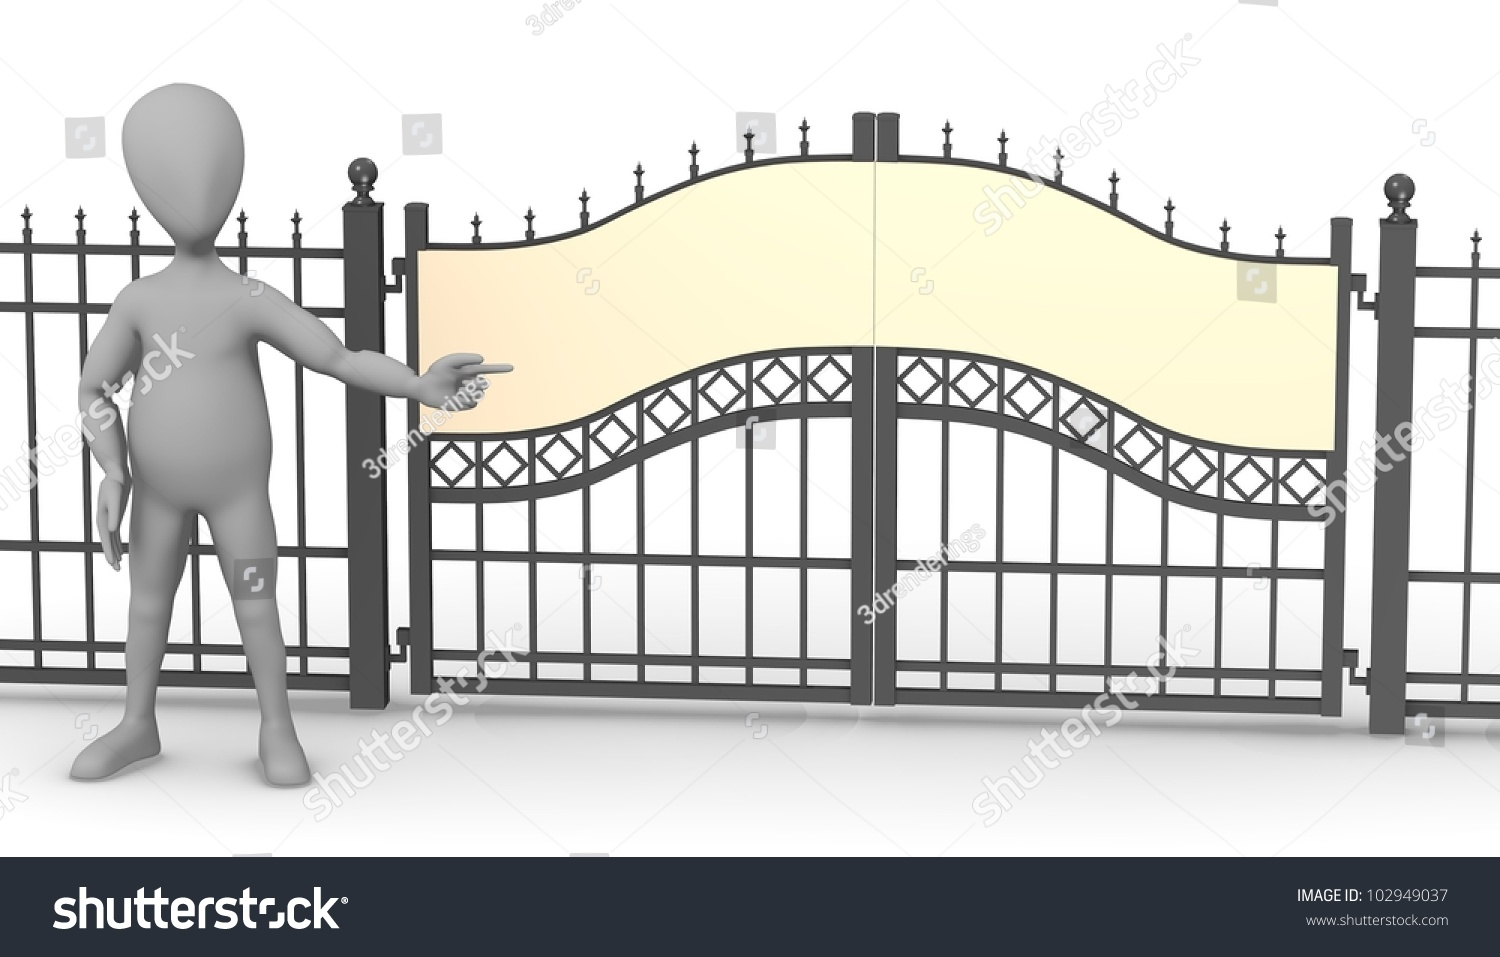 D render of cartoon character with fence gate stock photo